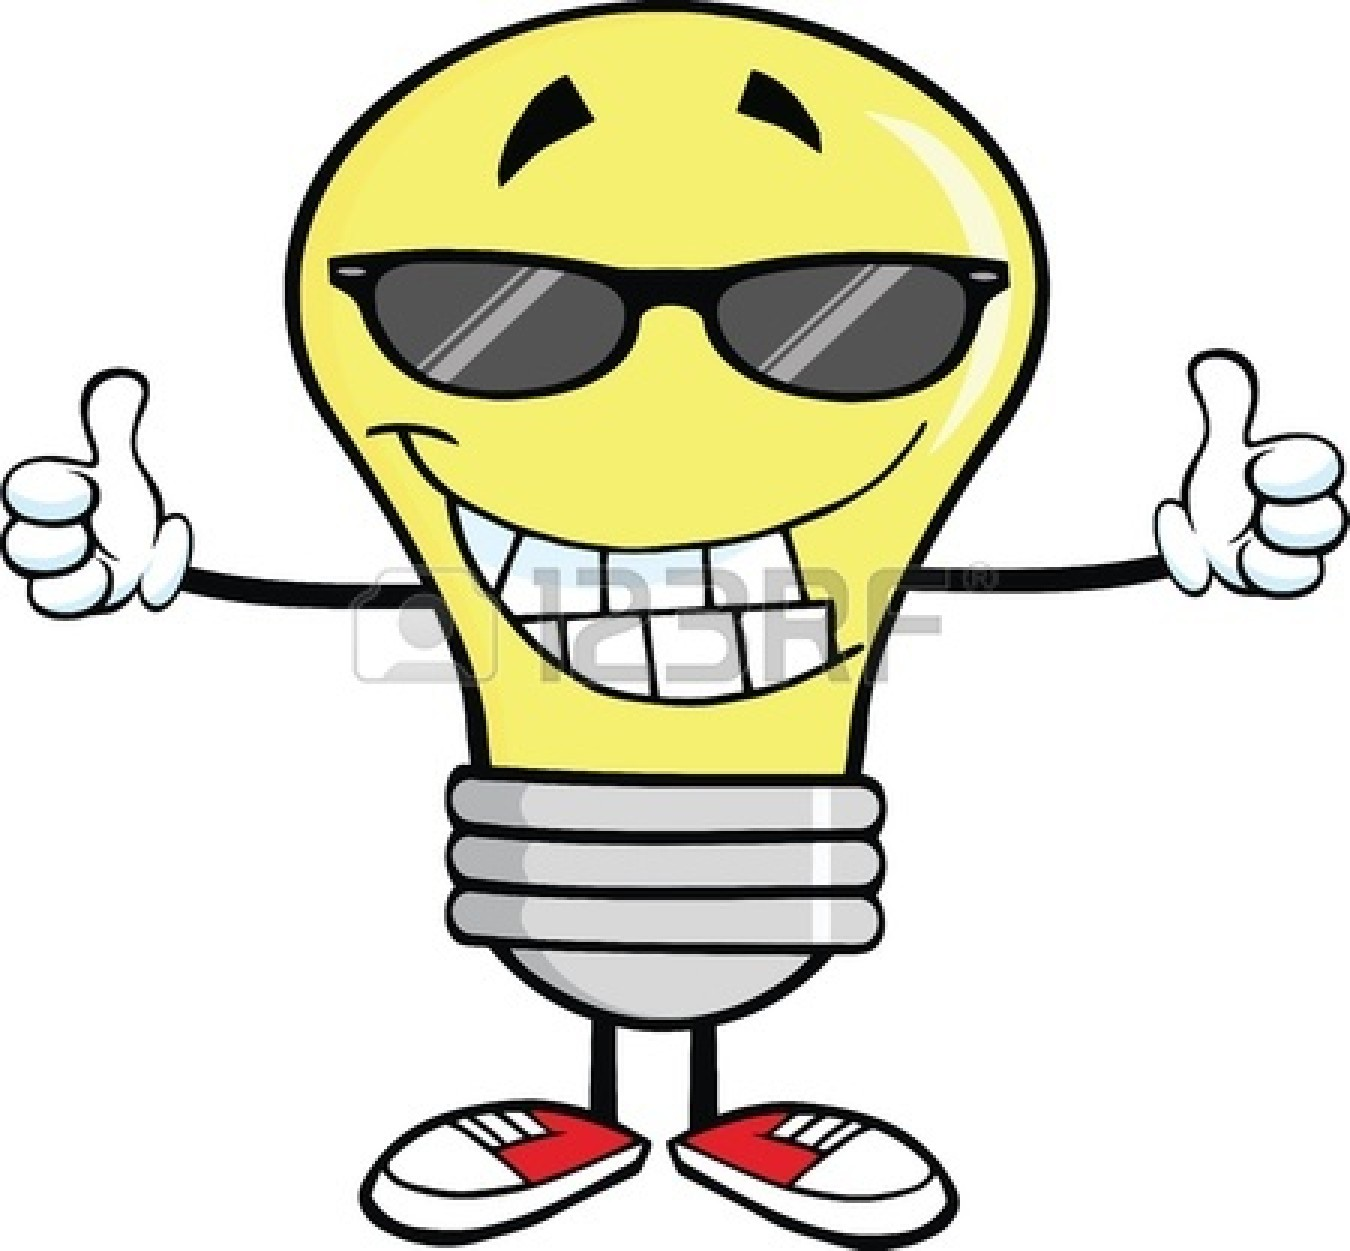 1350x1251 Smiley Face Thumbs Up Black And White Clipart Panda